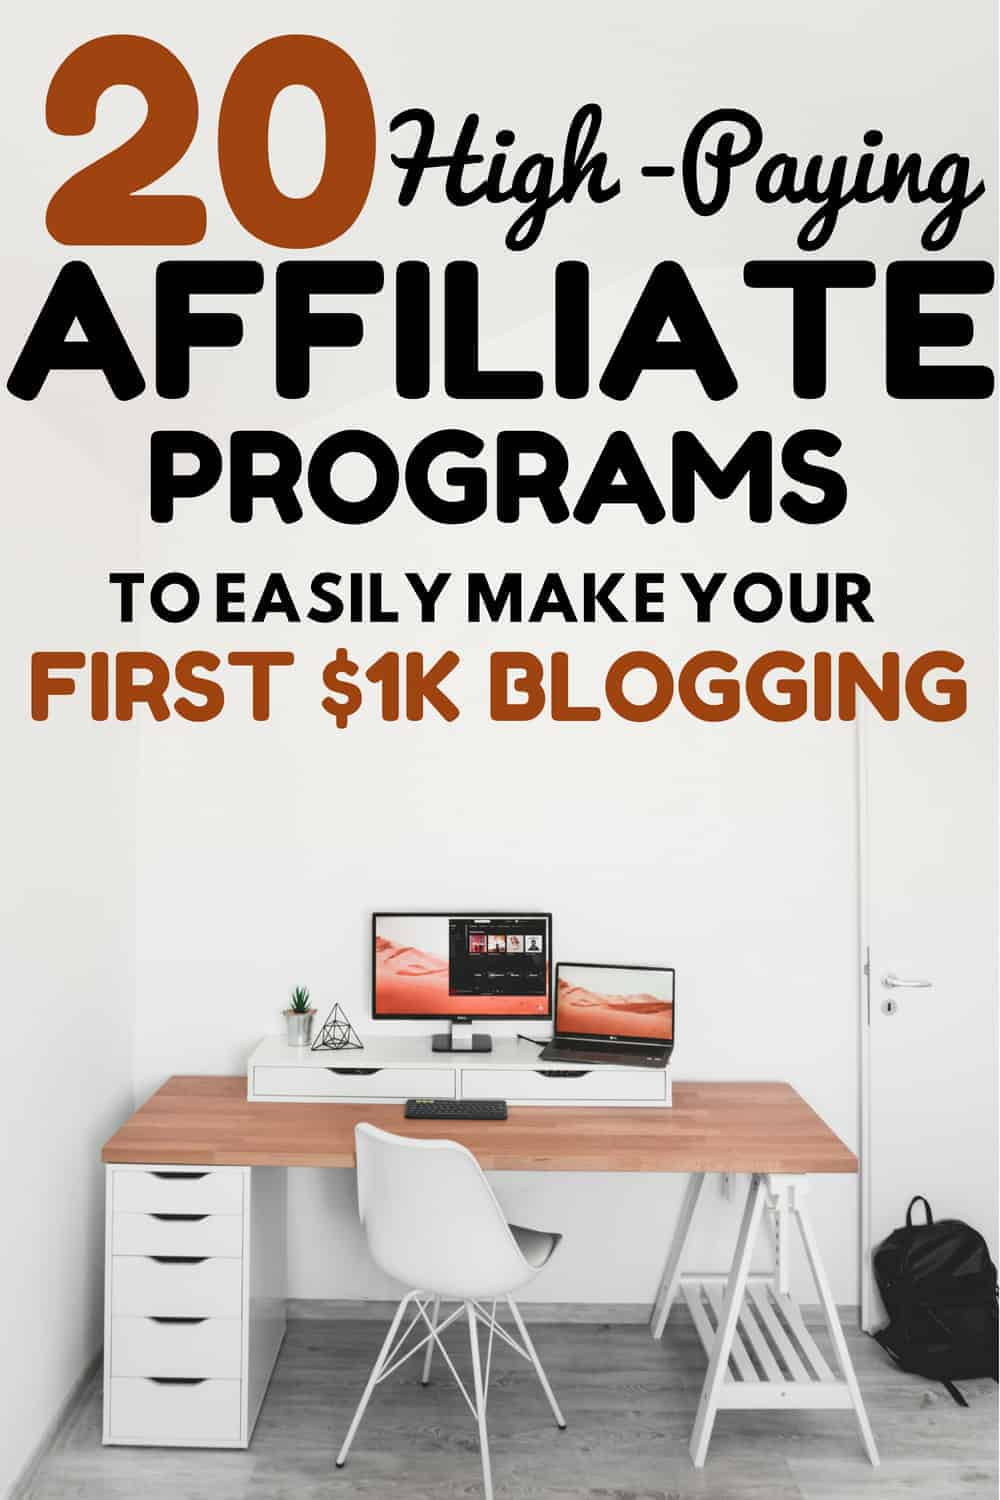 Best affiliate marketing programs for bloggers and content creators that pay well #affiliatemarketing #blogging #bloggingtips #workfromhome #makemoneyonline #makemoneyblogging